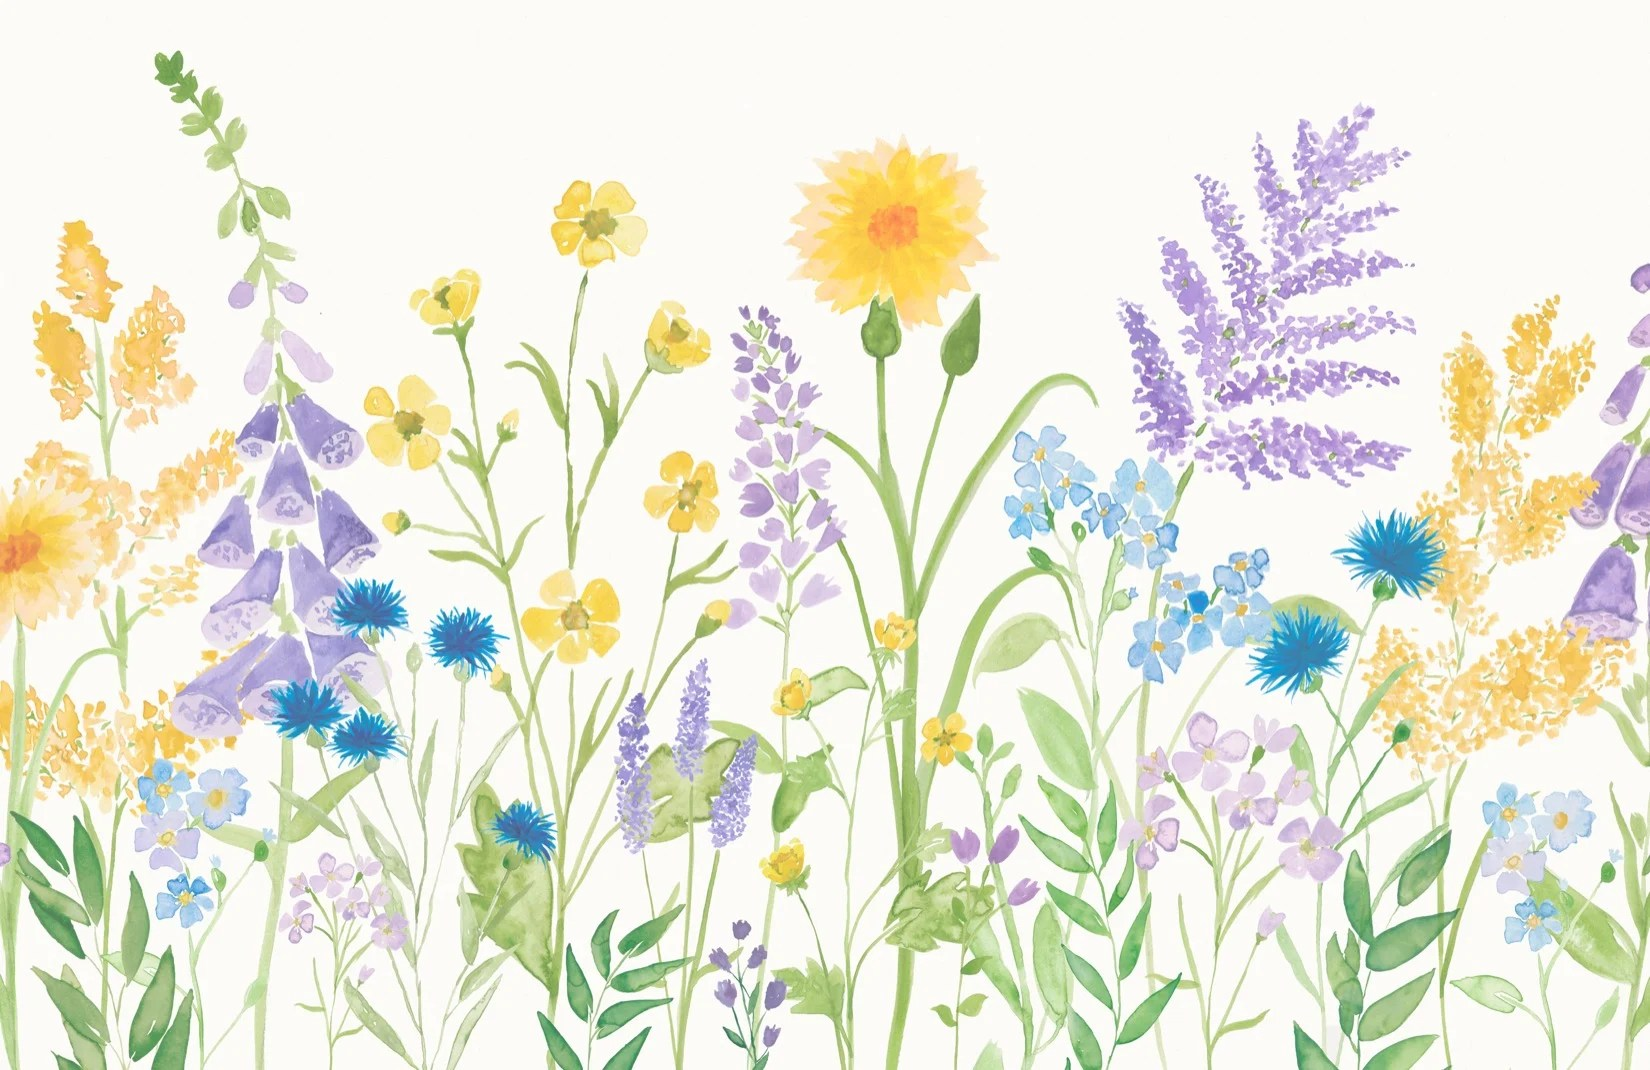 Wildflower Wallpaper Bright Floral Design Muralswallpaper